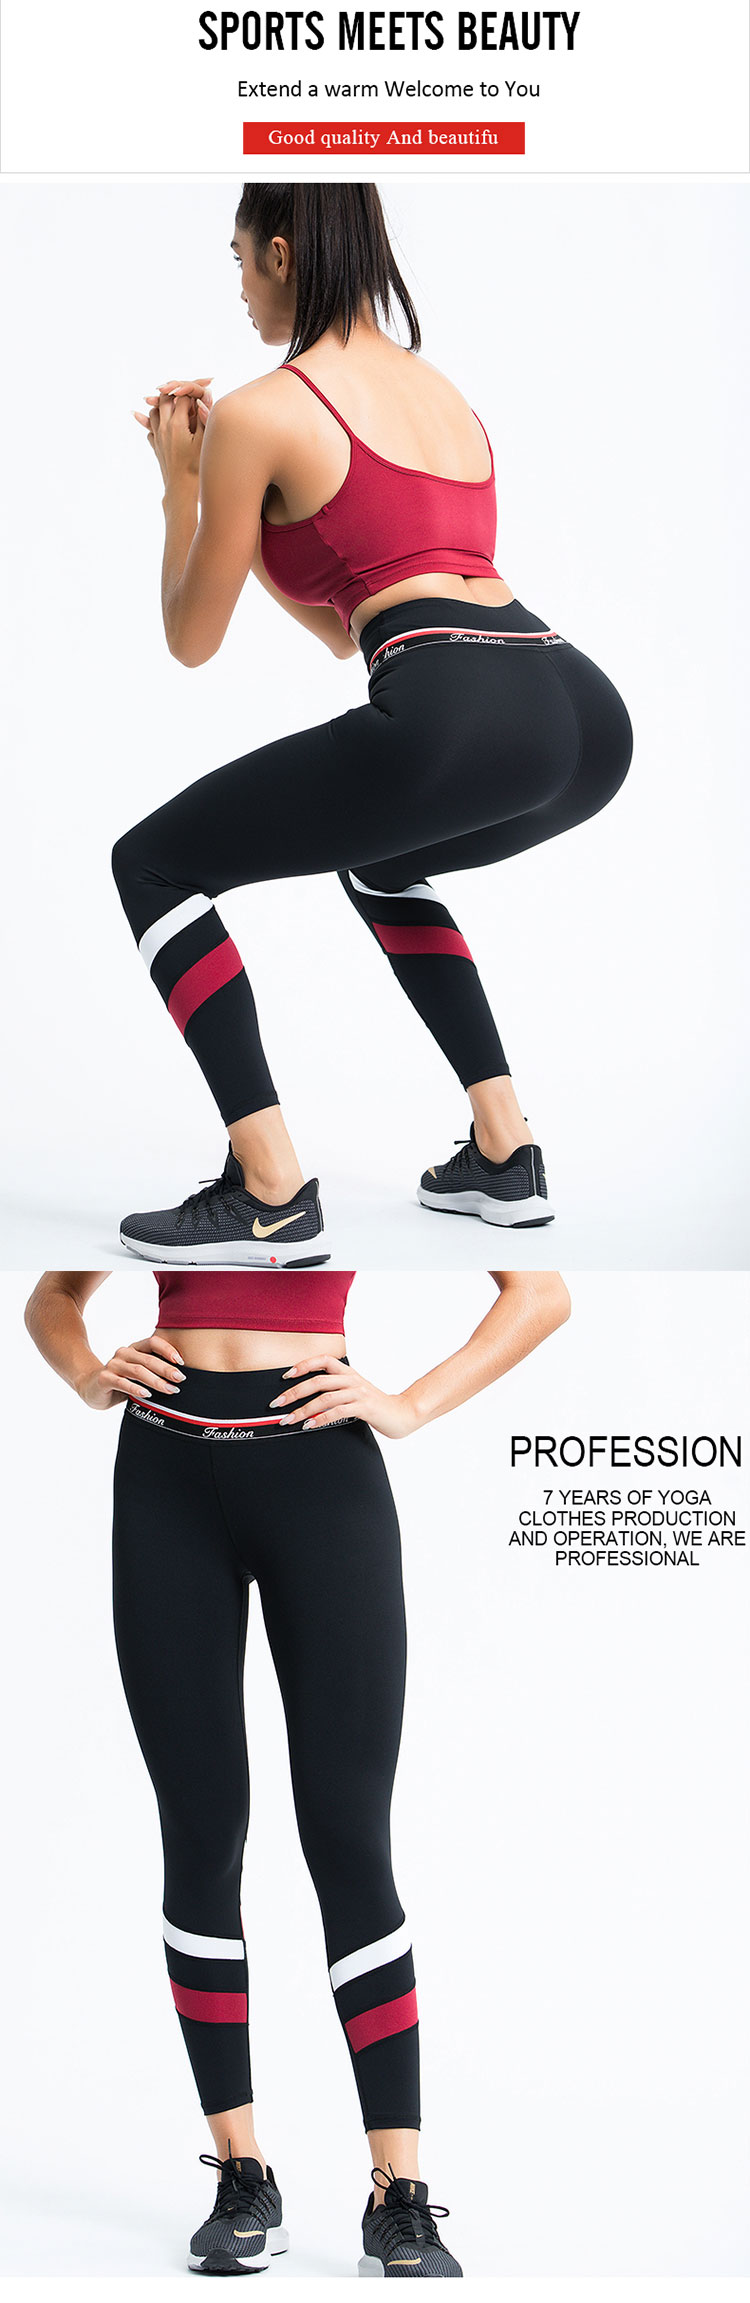 Striped-gym-leggings,-and-its-stars-pattern-design-and-side-hollow-out-design-have-sold-out-completely-to-fitness-lovers